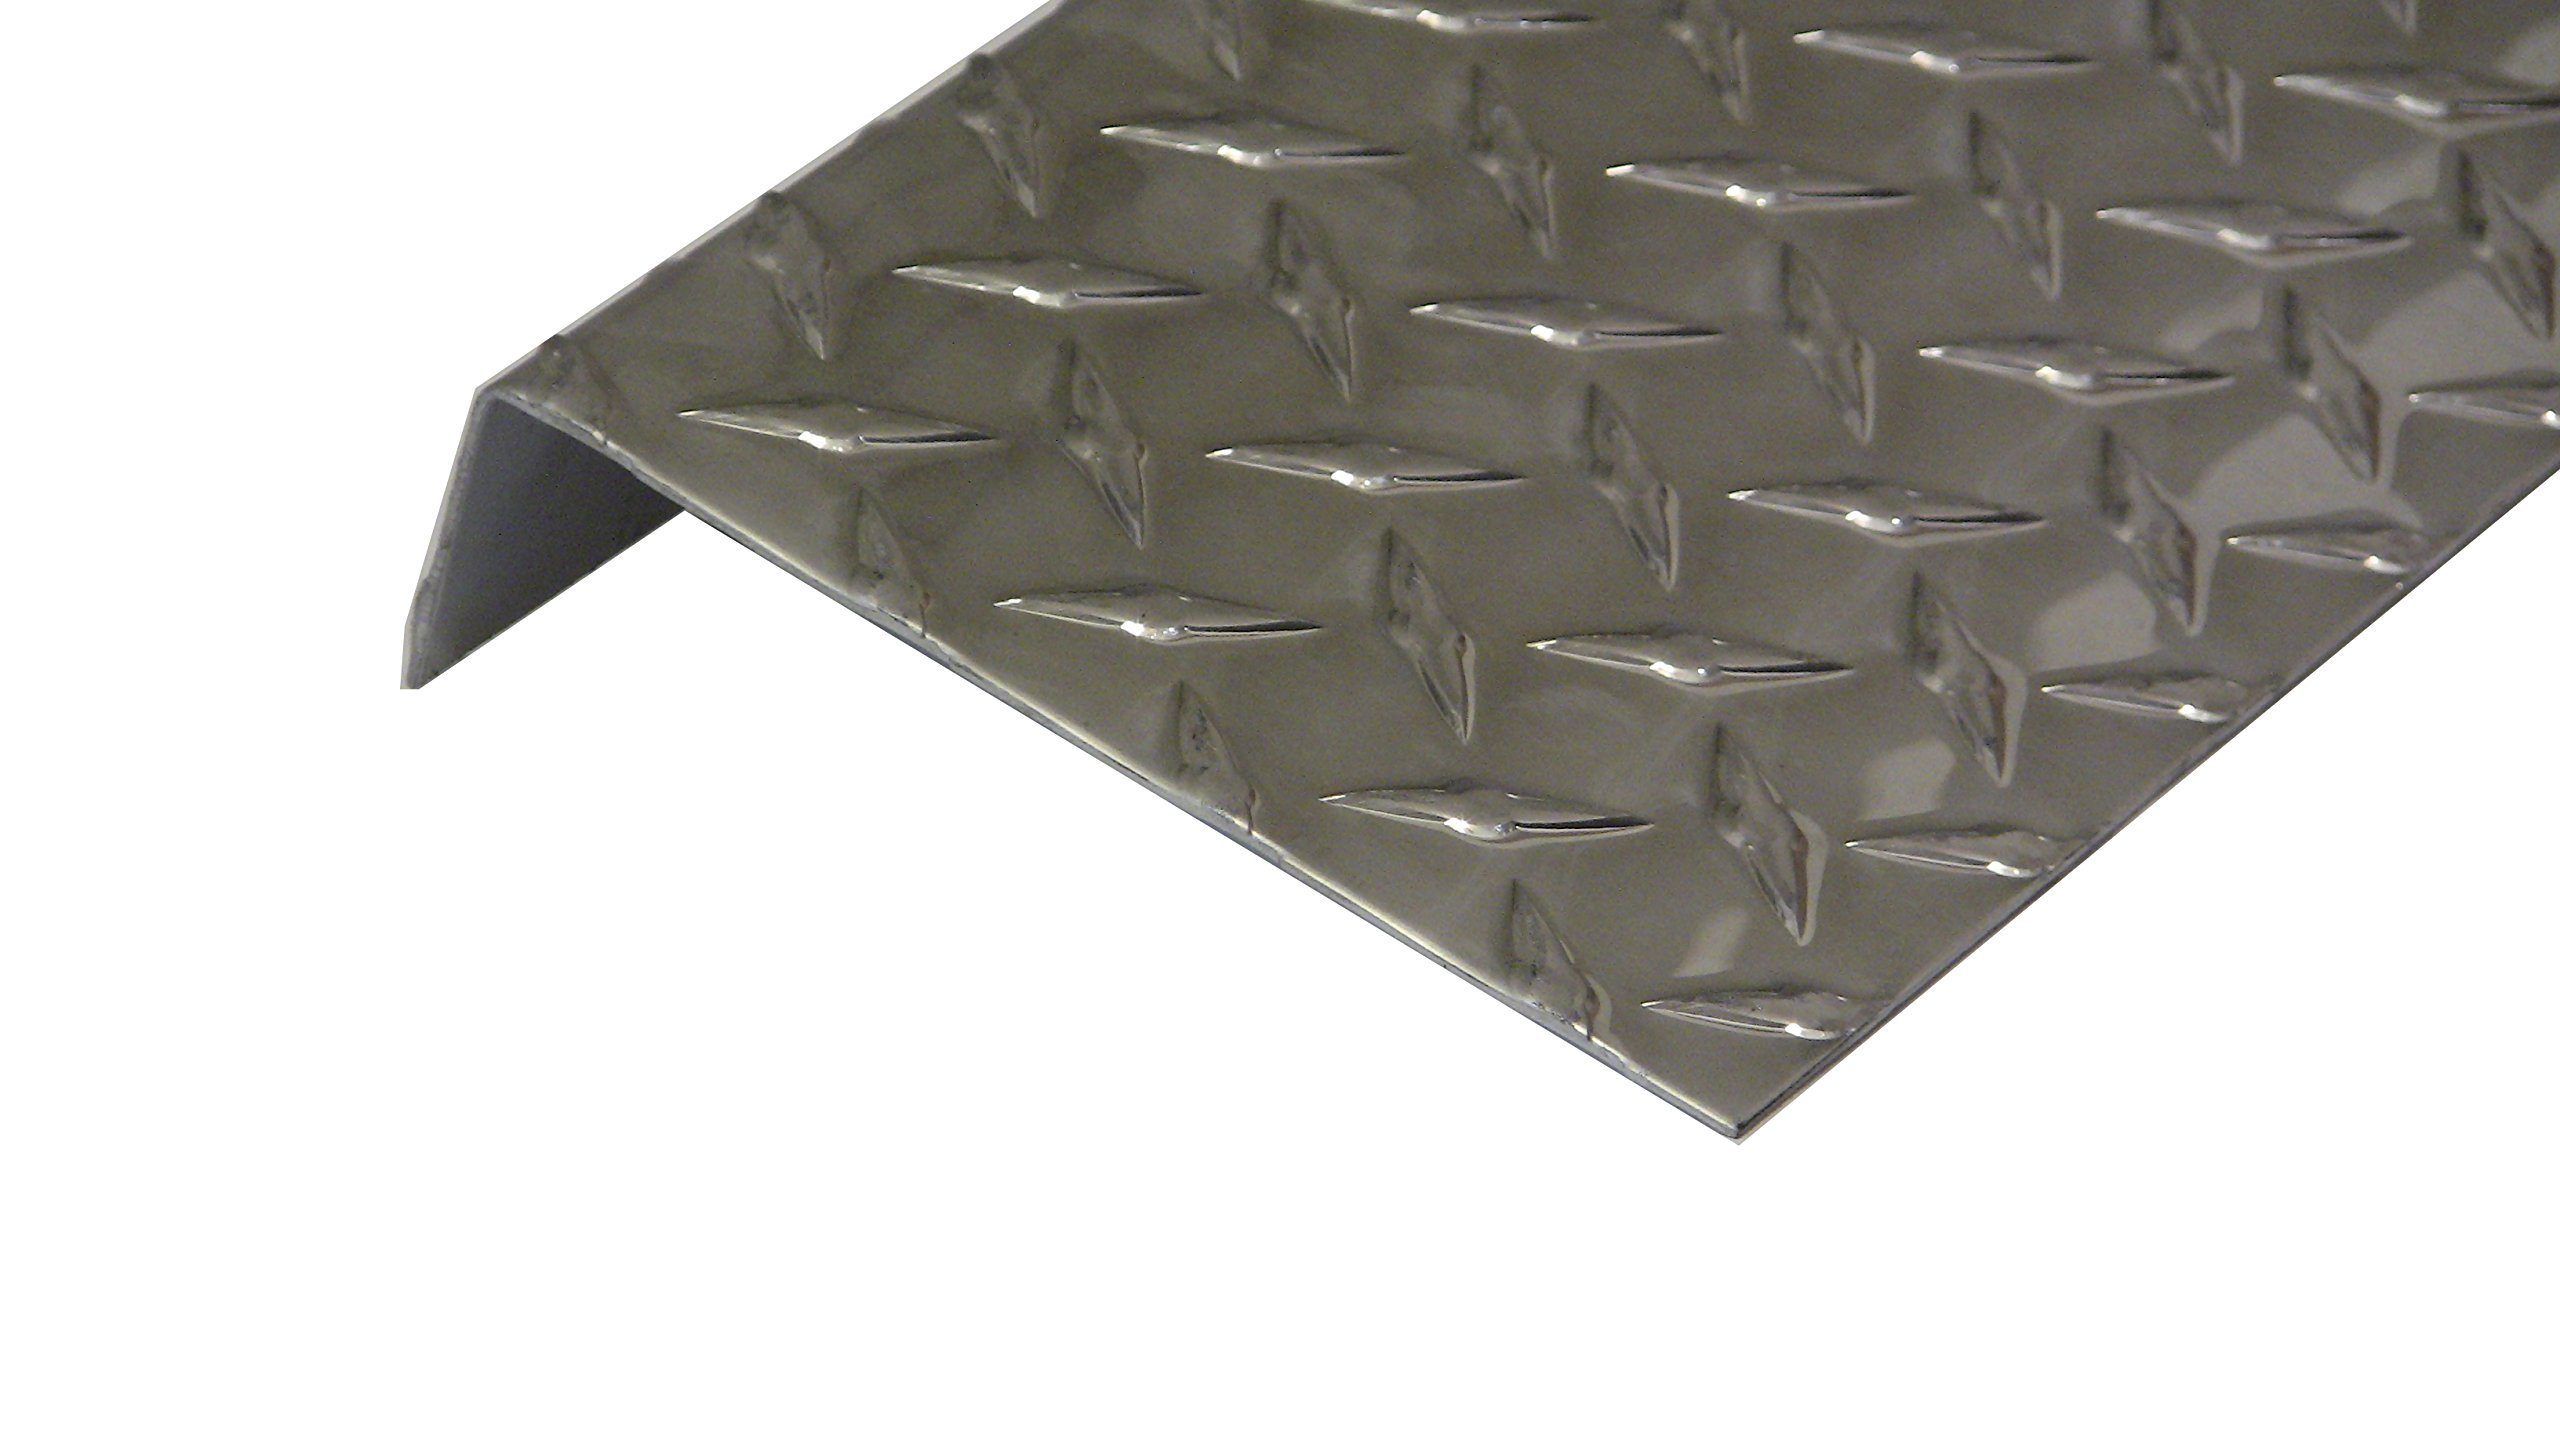 Aluminum Diamond Plate Door Threshold .062 x 1.5 x 5.5 x 36 in. w/out screws and holes | (1/16 x 1-1/2 x 5-1/2 x 36 in.) UAAC